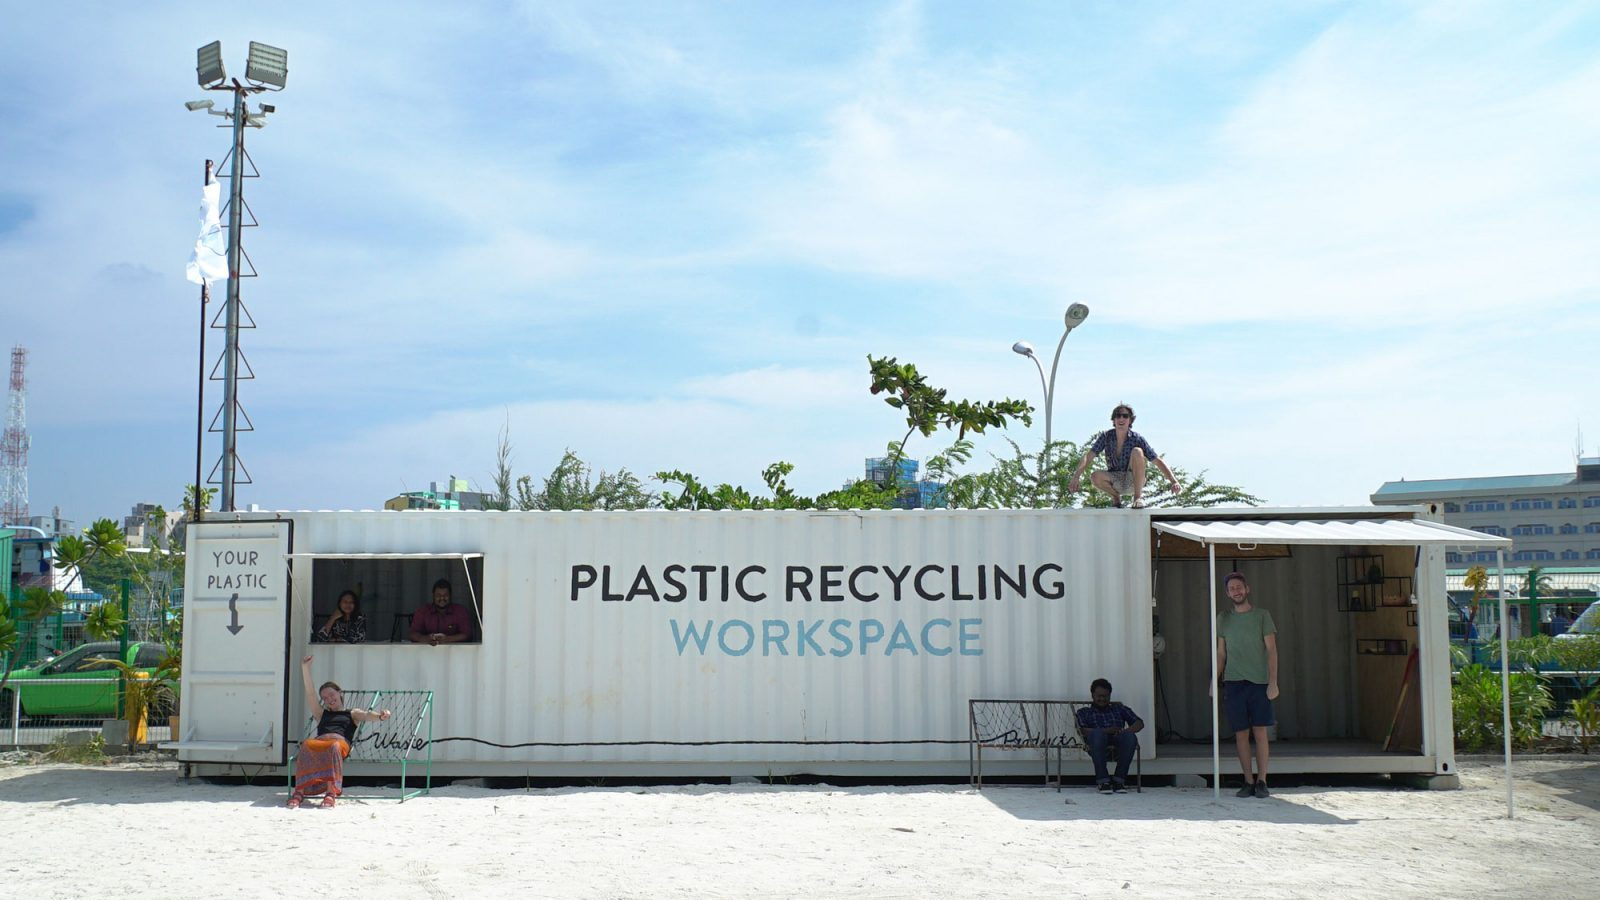 Image: Precious Plastic team members with the plastic recycling workspace in the Maldives